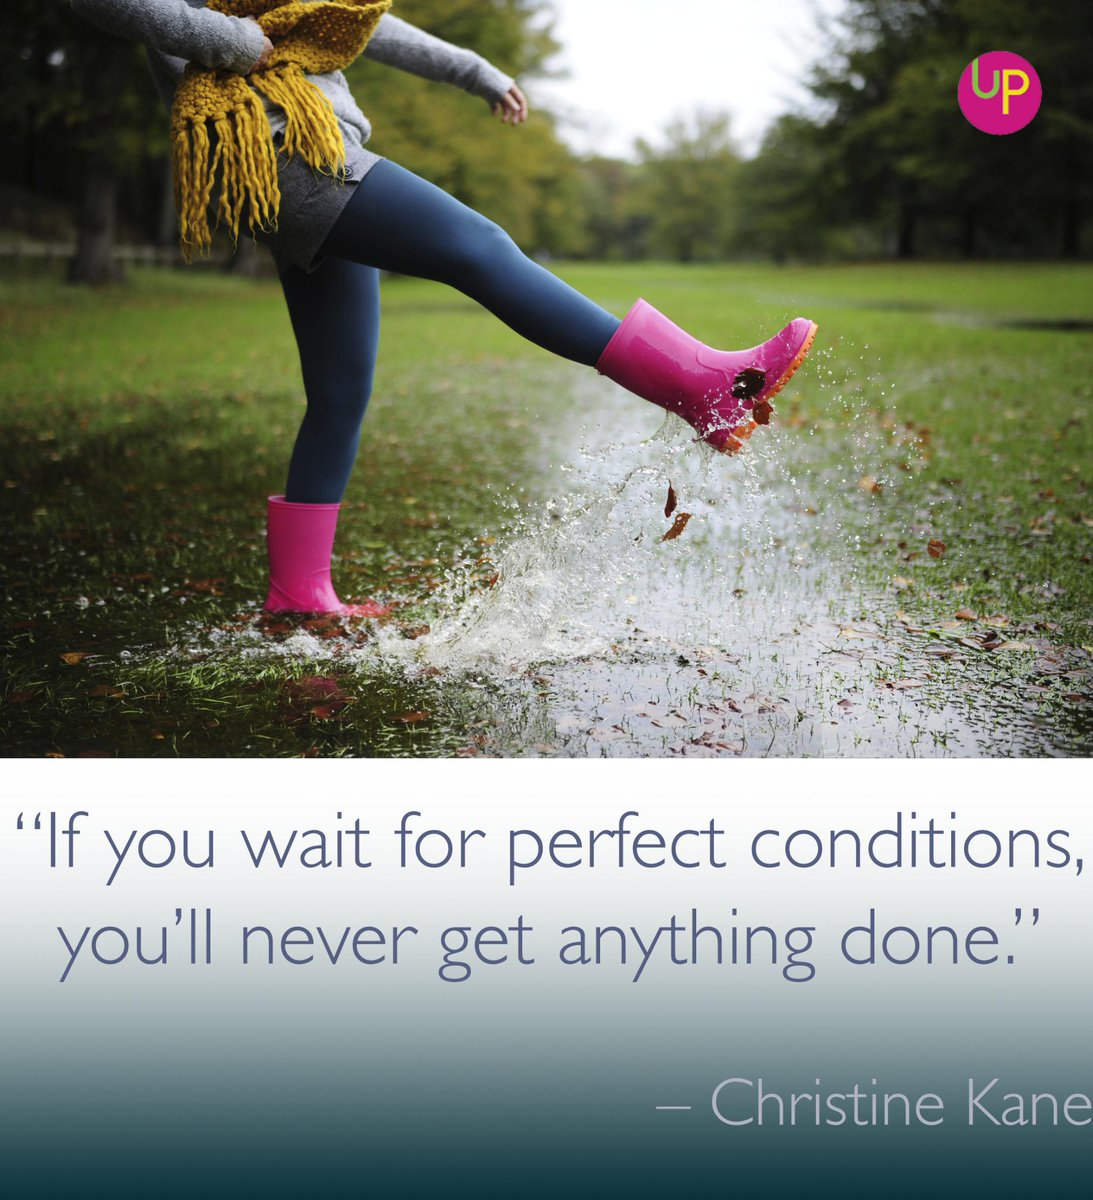 If you wait for perfect conditions, you'll never get anything done. #justdoit http://t.co/2XPGIPVJQI